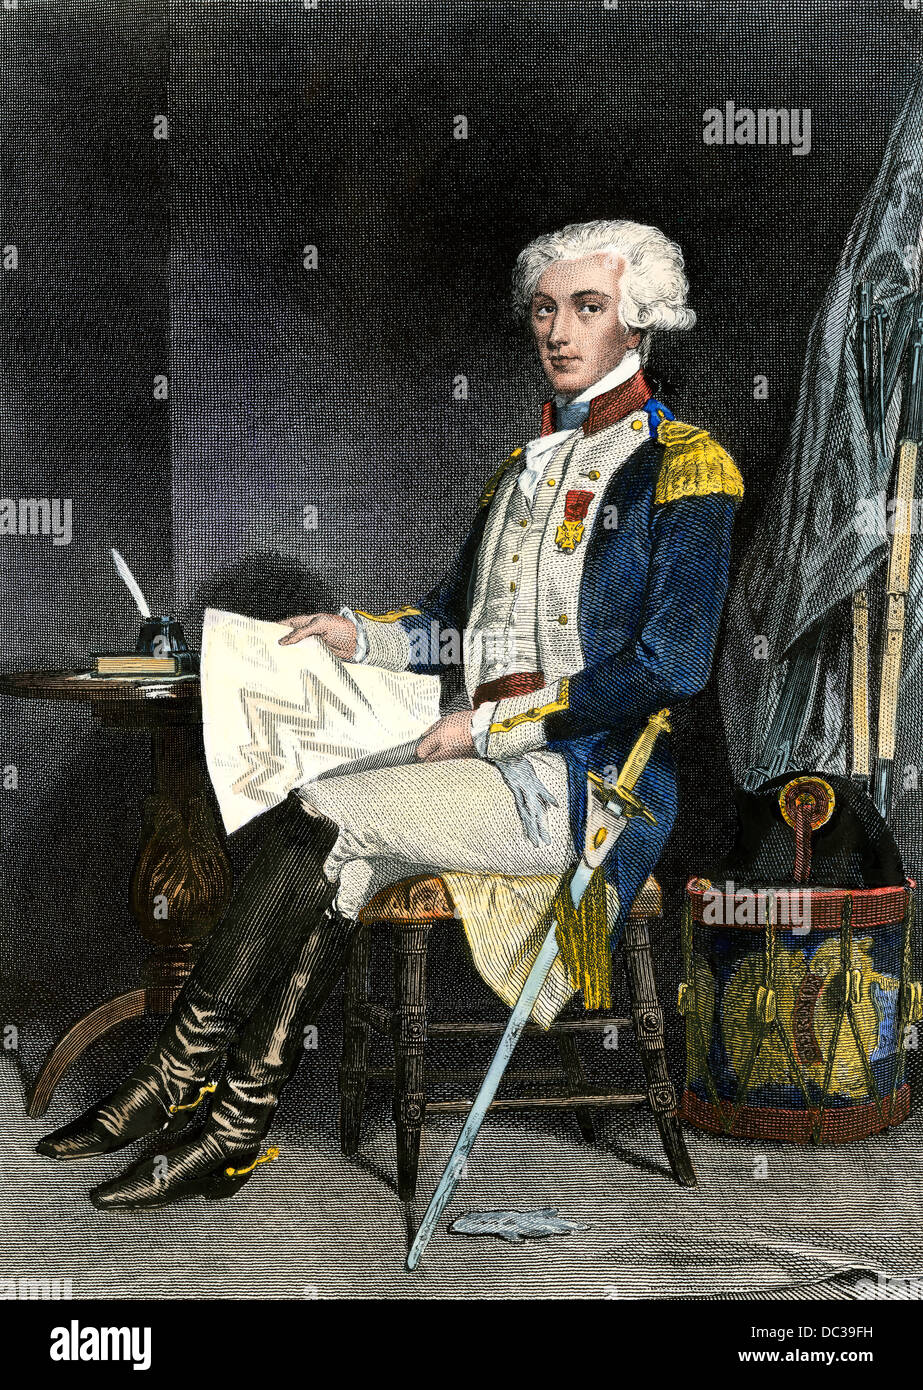 lafayette and the american revolution In the united states, lafayette's image, from the time of the american revolution, derived from his disinterestedness in fighting, without pay.